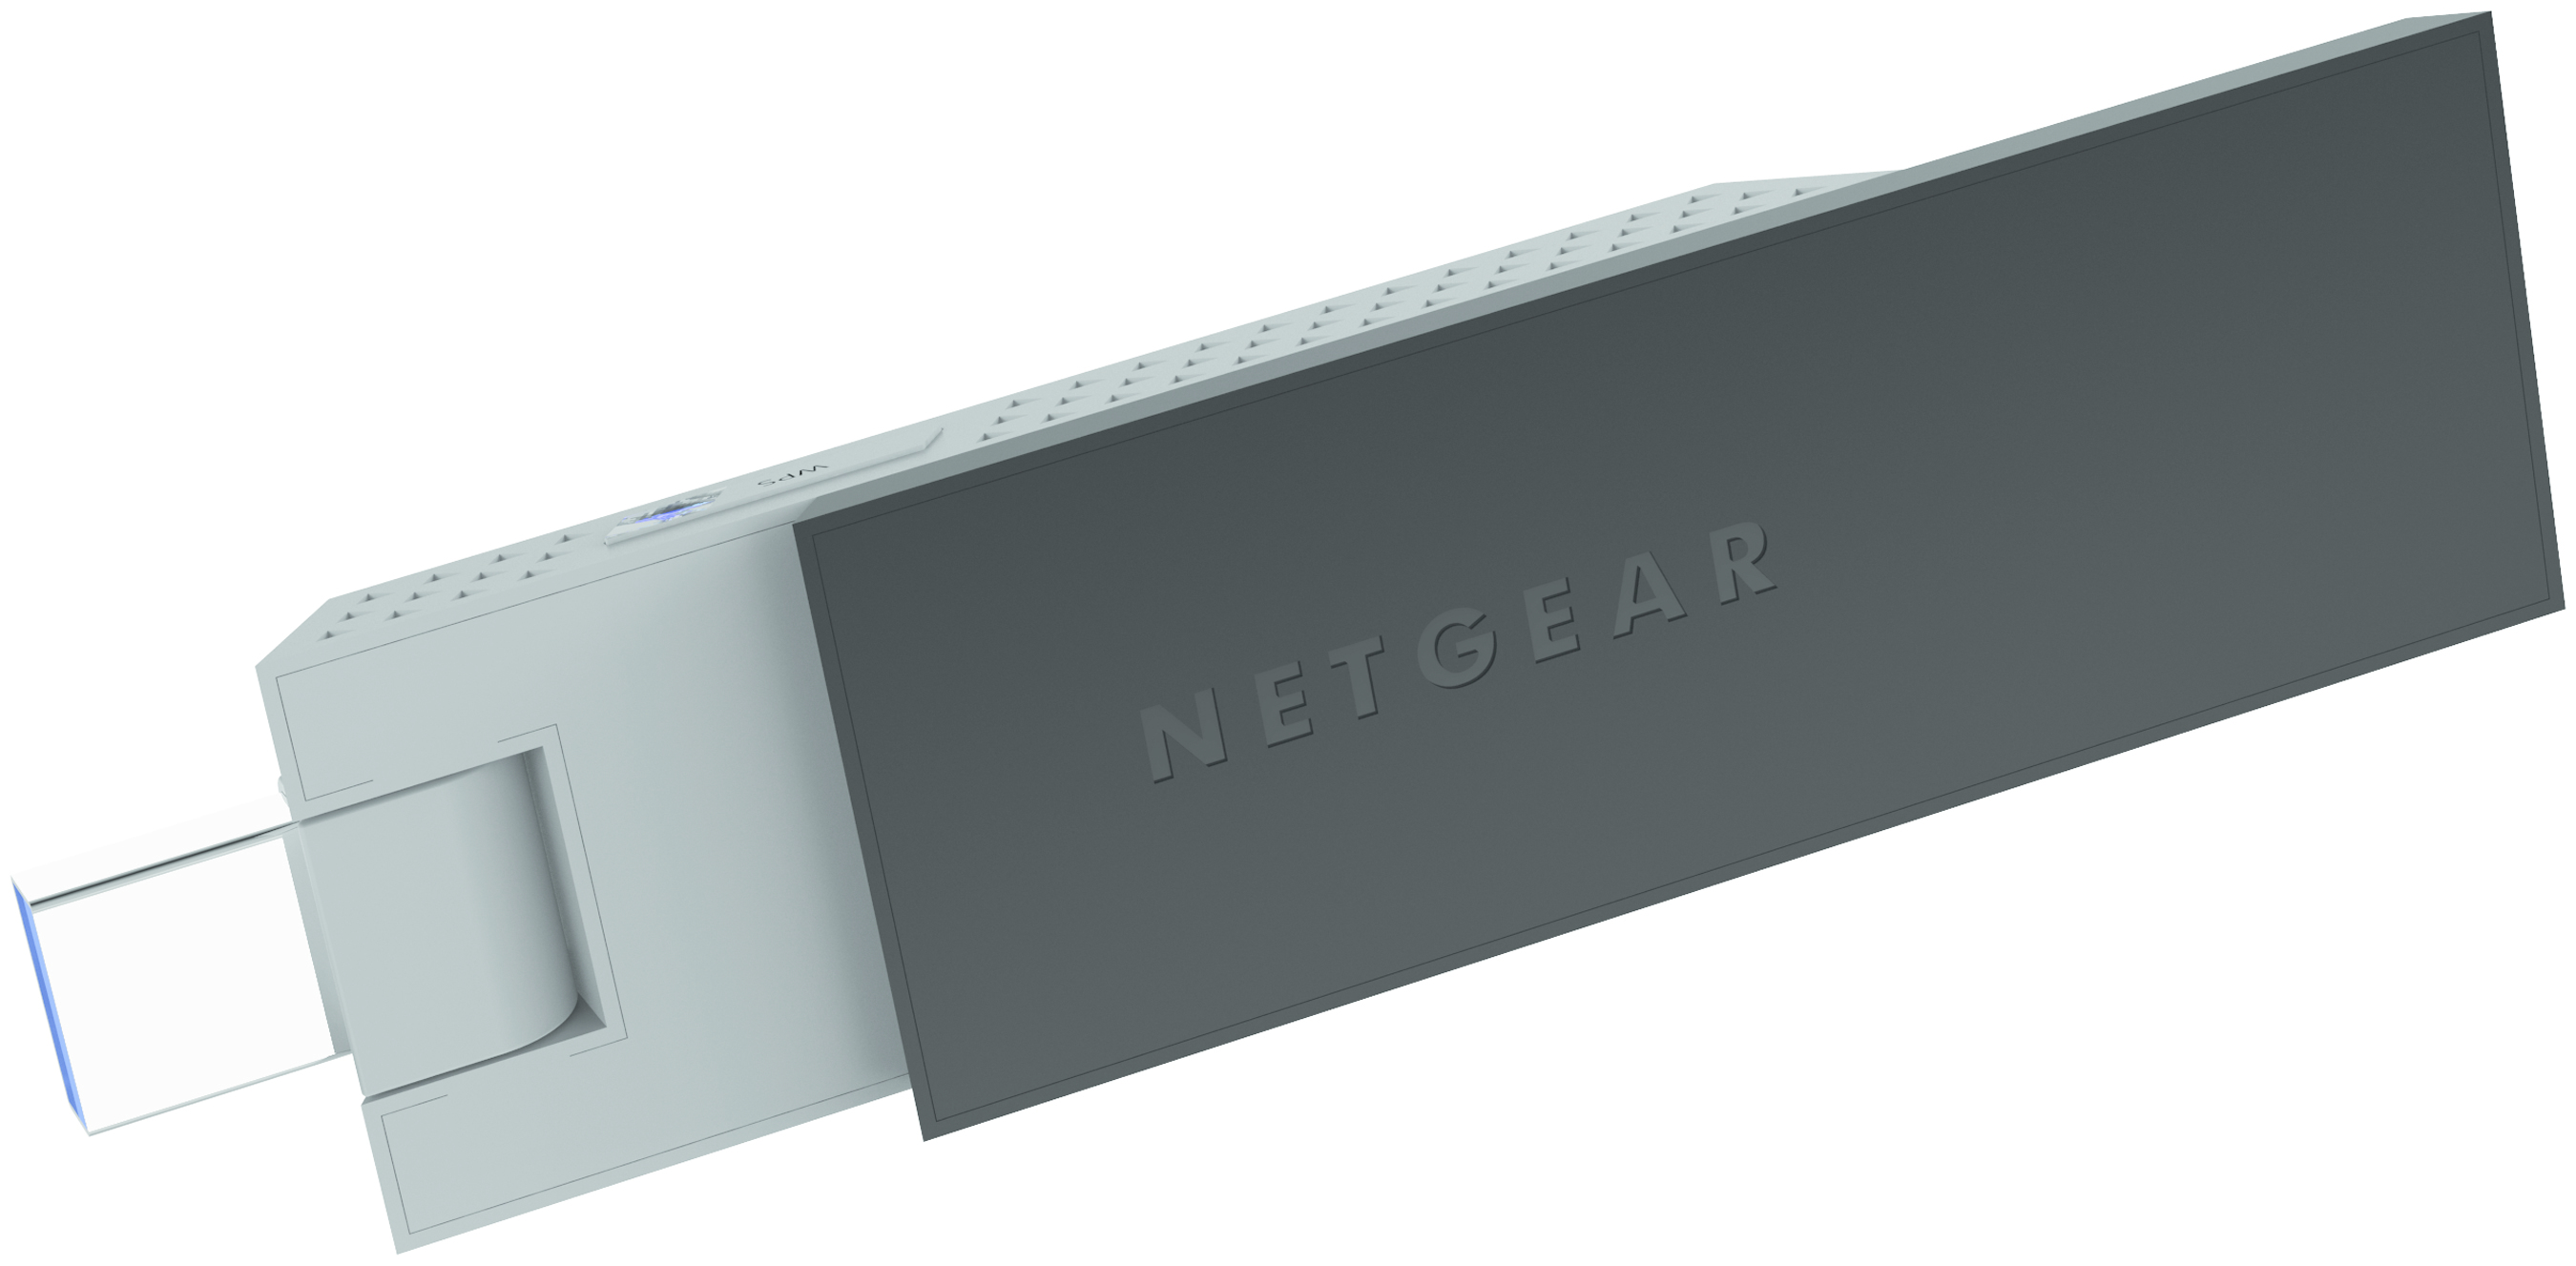 NETGEAR A6200 WiFi USB Adapter